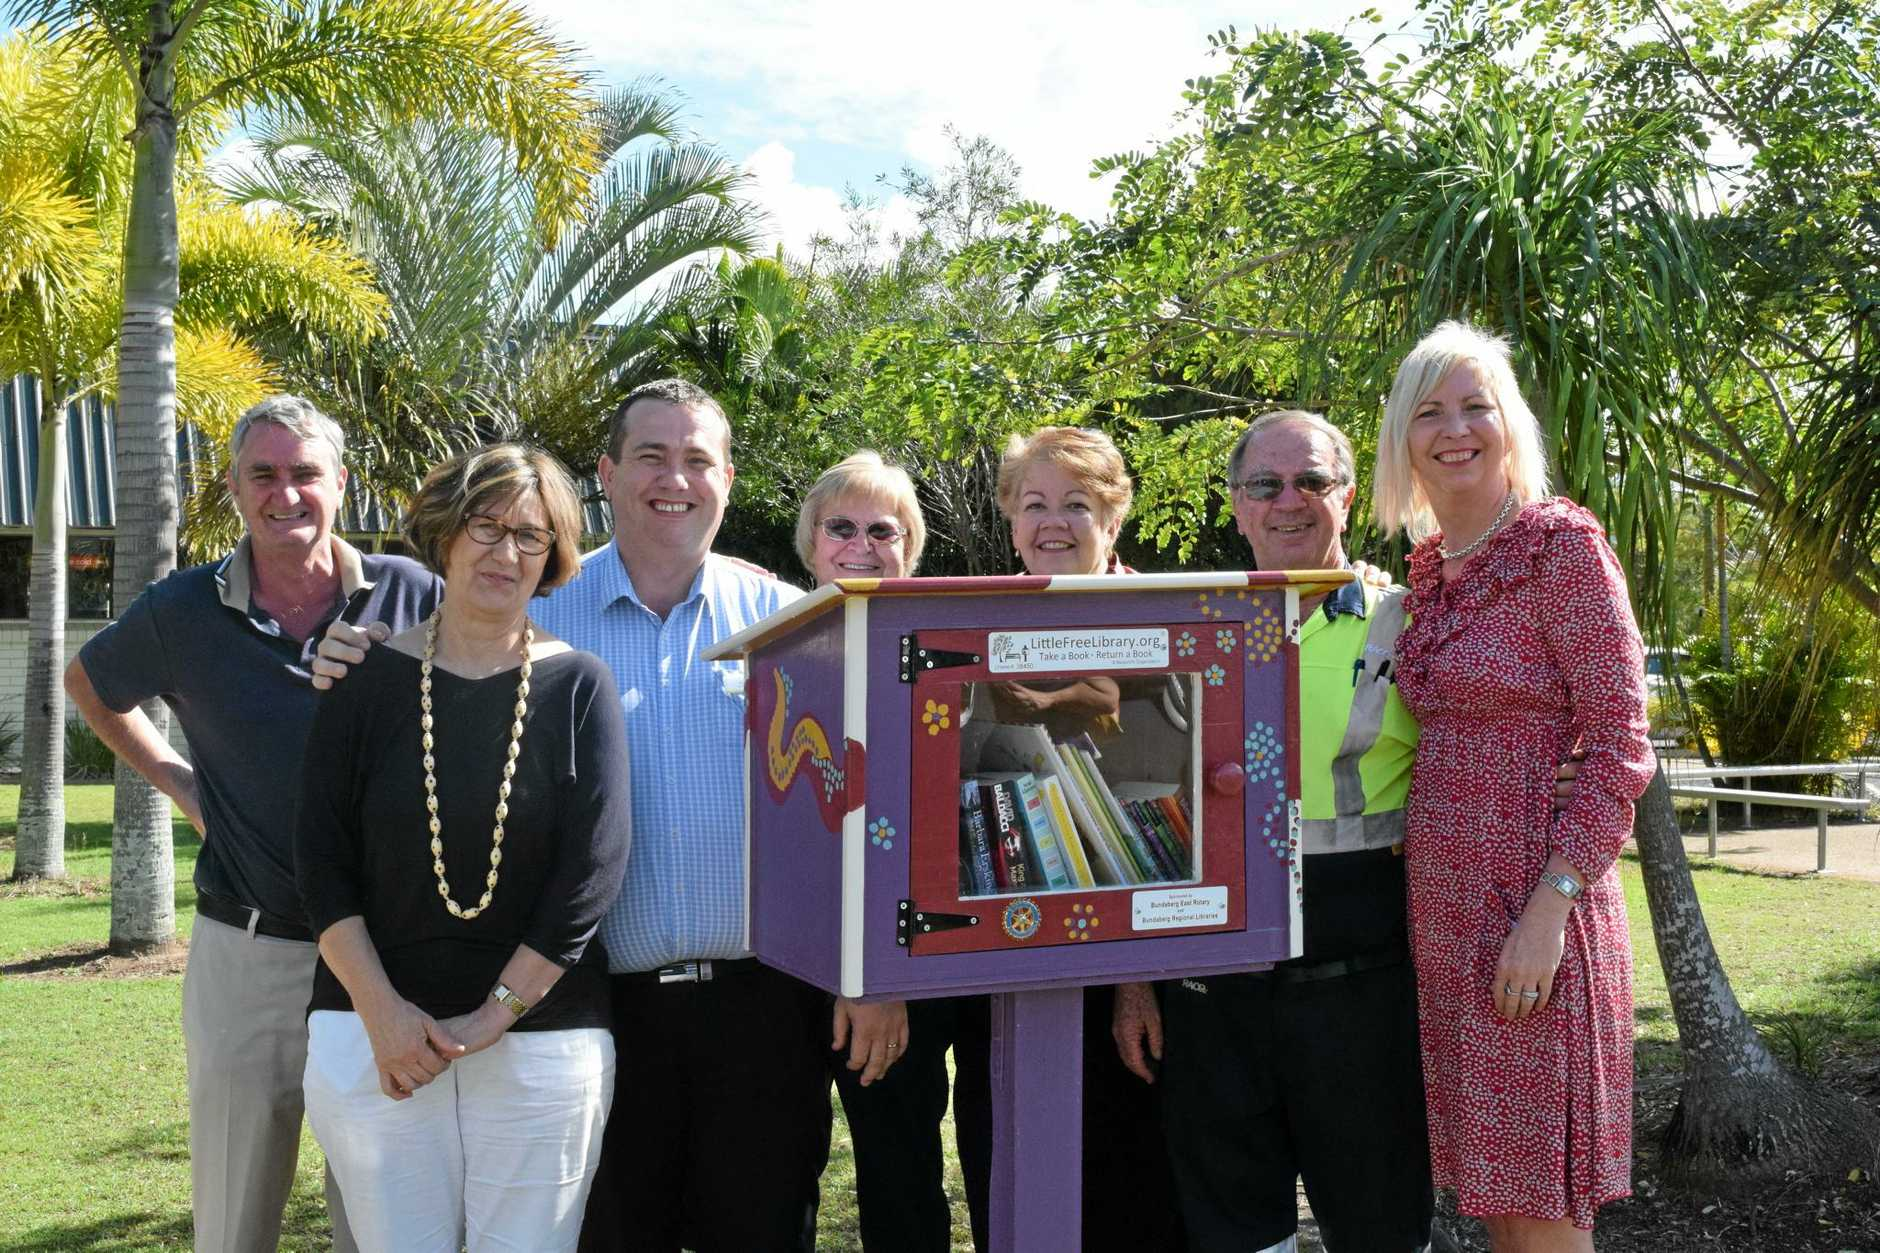 LIBRARY LAUNCH: Rod Medew, Cathy Zanella, Brant Duff, Jan Mylrea, Sue Gammon, Ian Mylrea and Maria Burnet launch the Little Free Library at the YMCA. Photo: Eliza Goetze / NewsMail